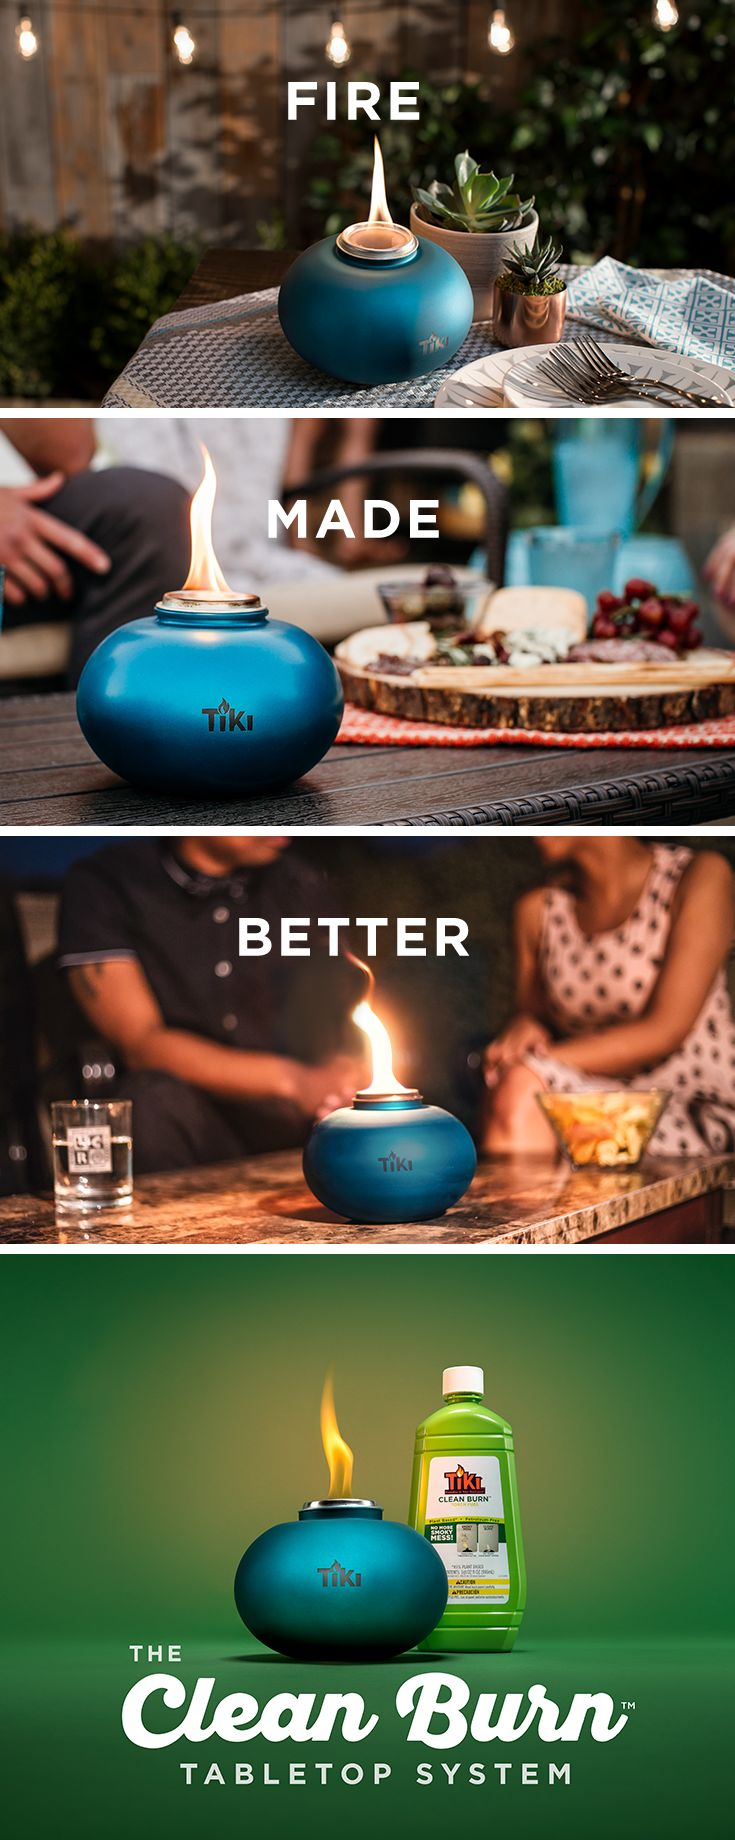 Less smoke. Brighter flame. Fire is now made for your tabletop. Learn more and see more styles at tikibrand.com/fire.